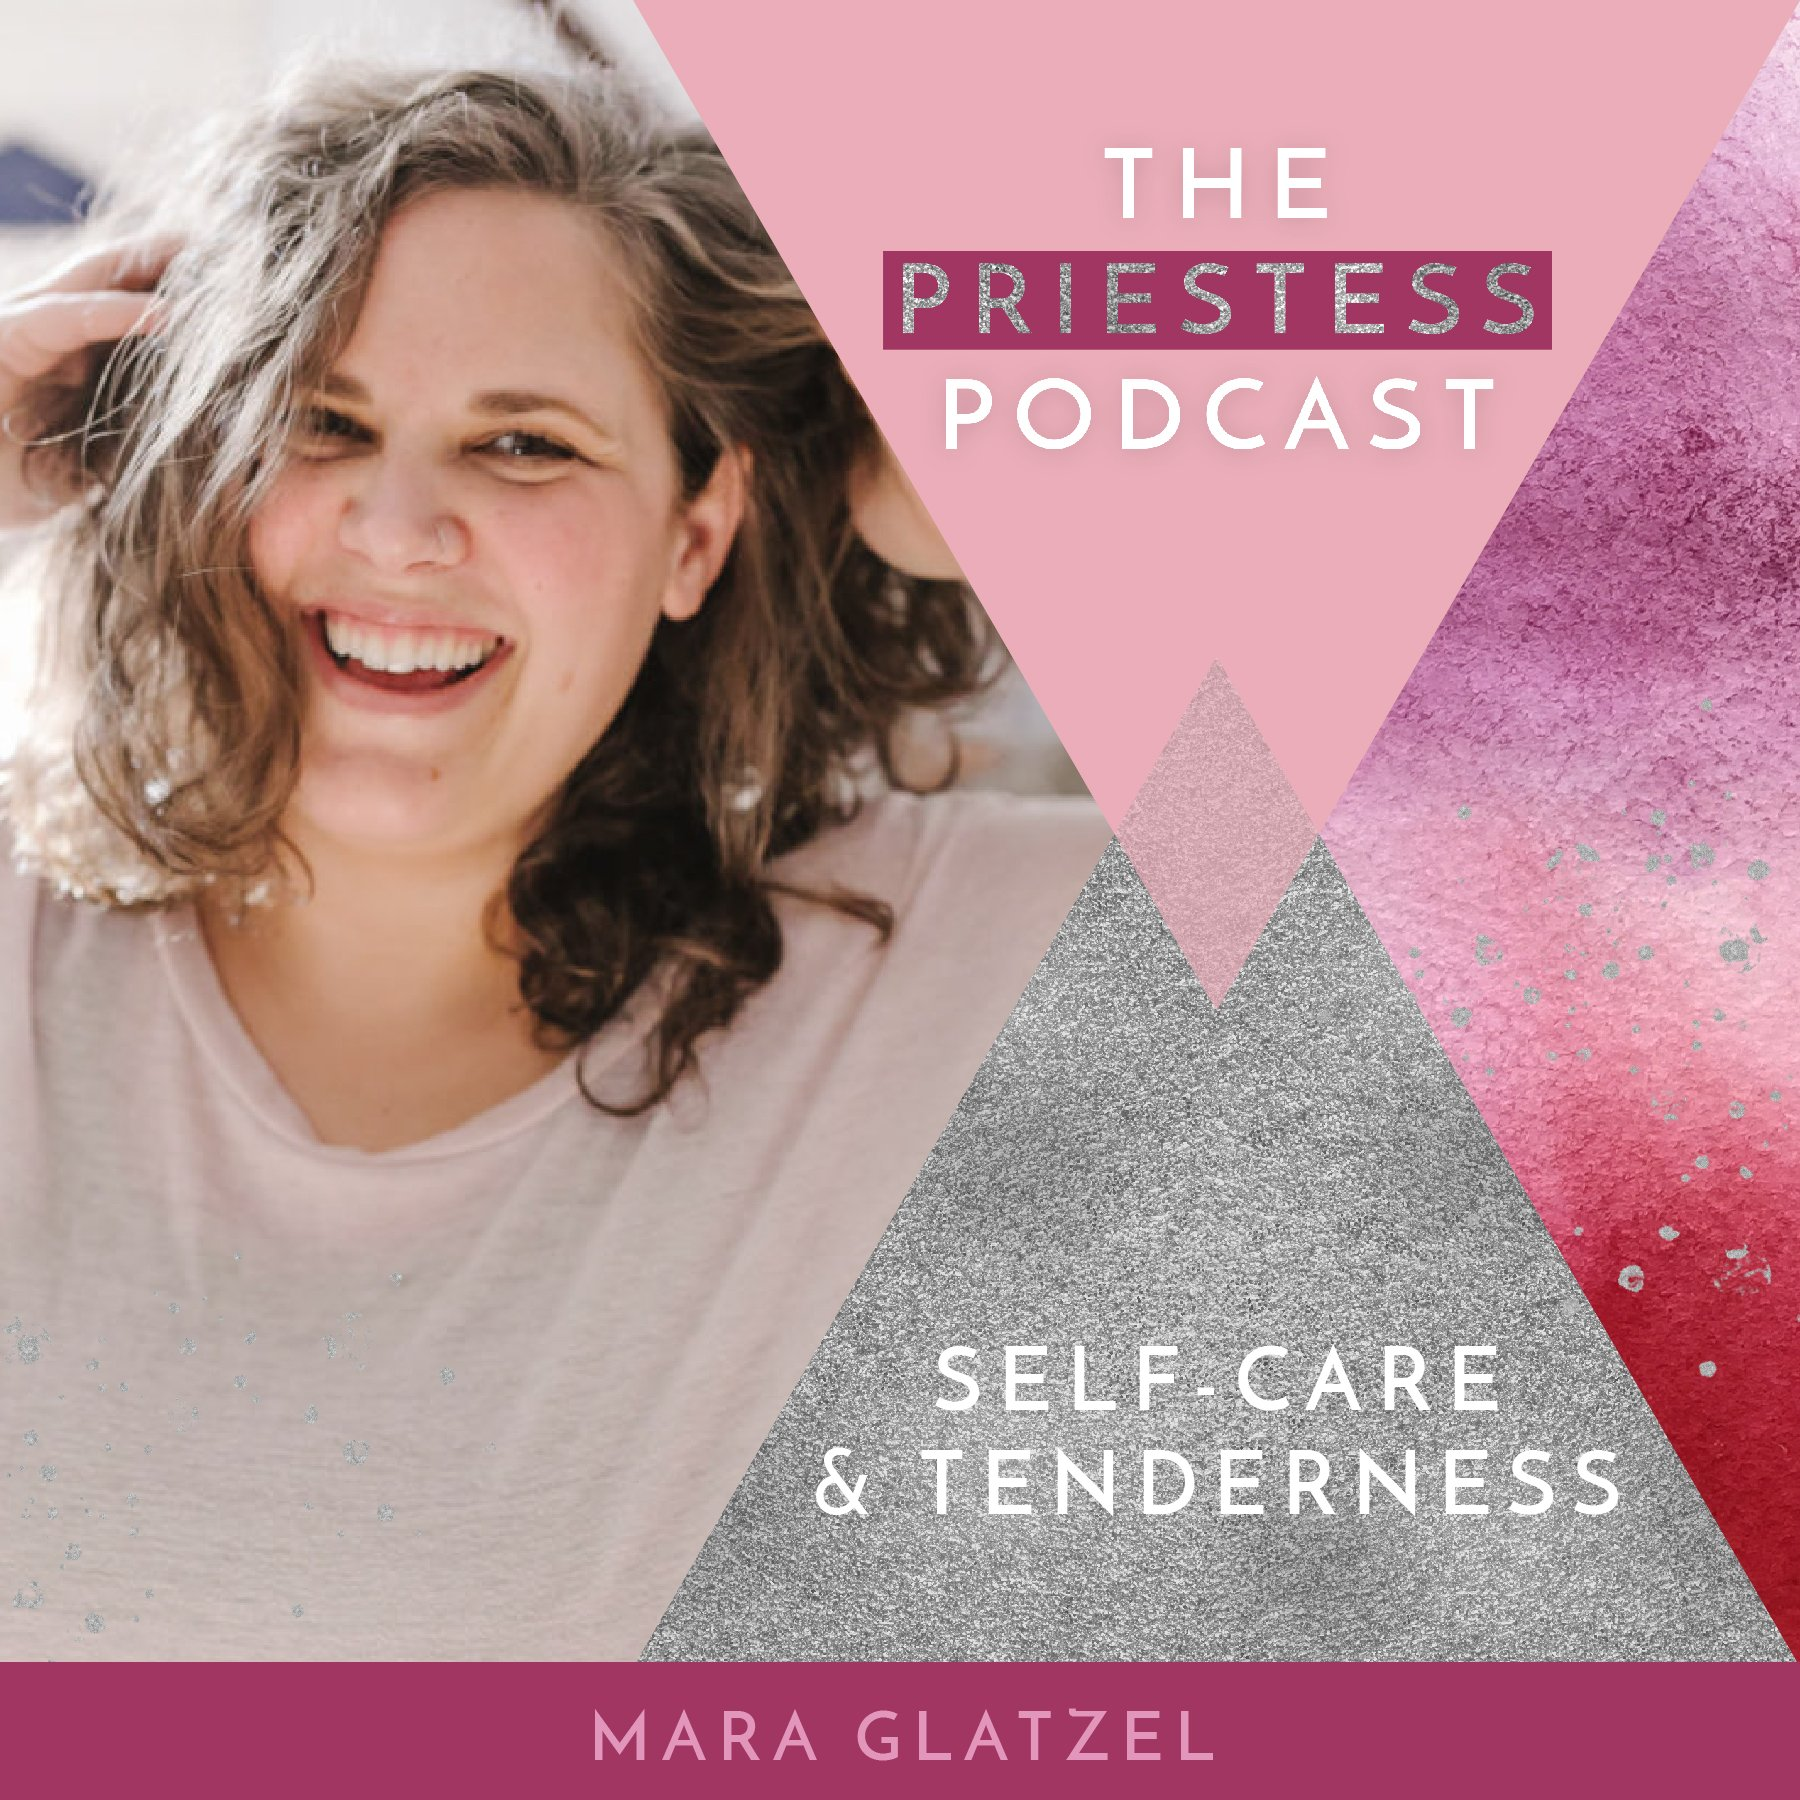 Mara Glatzel on Self-Care & Tenderness